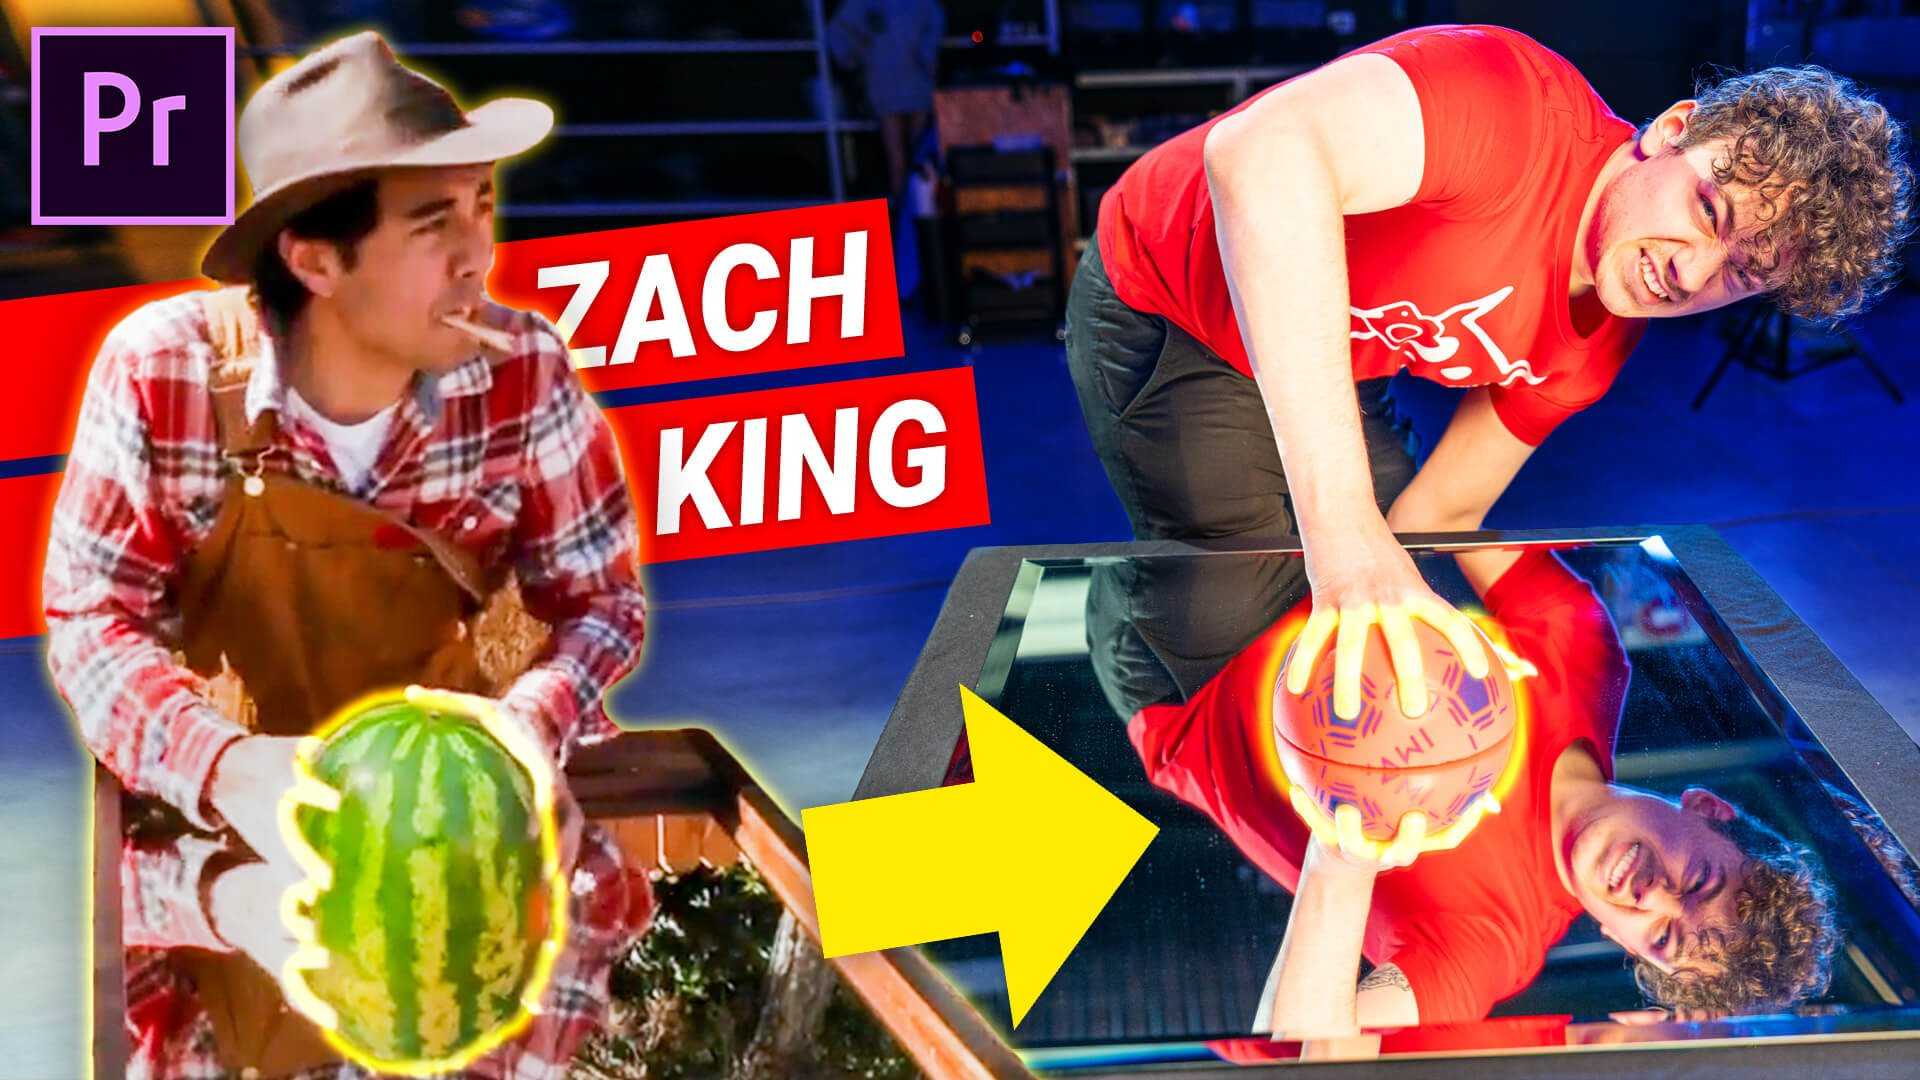 Zach King's Watermelon Mirror Trick Inside Premiere Pro